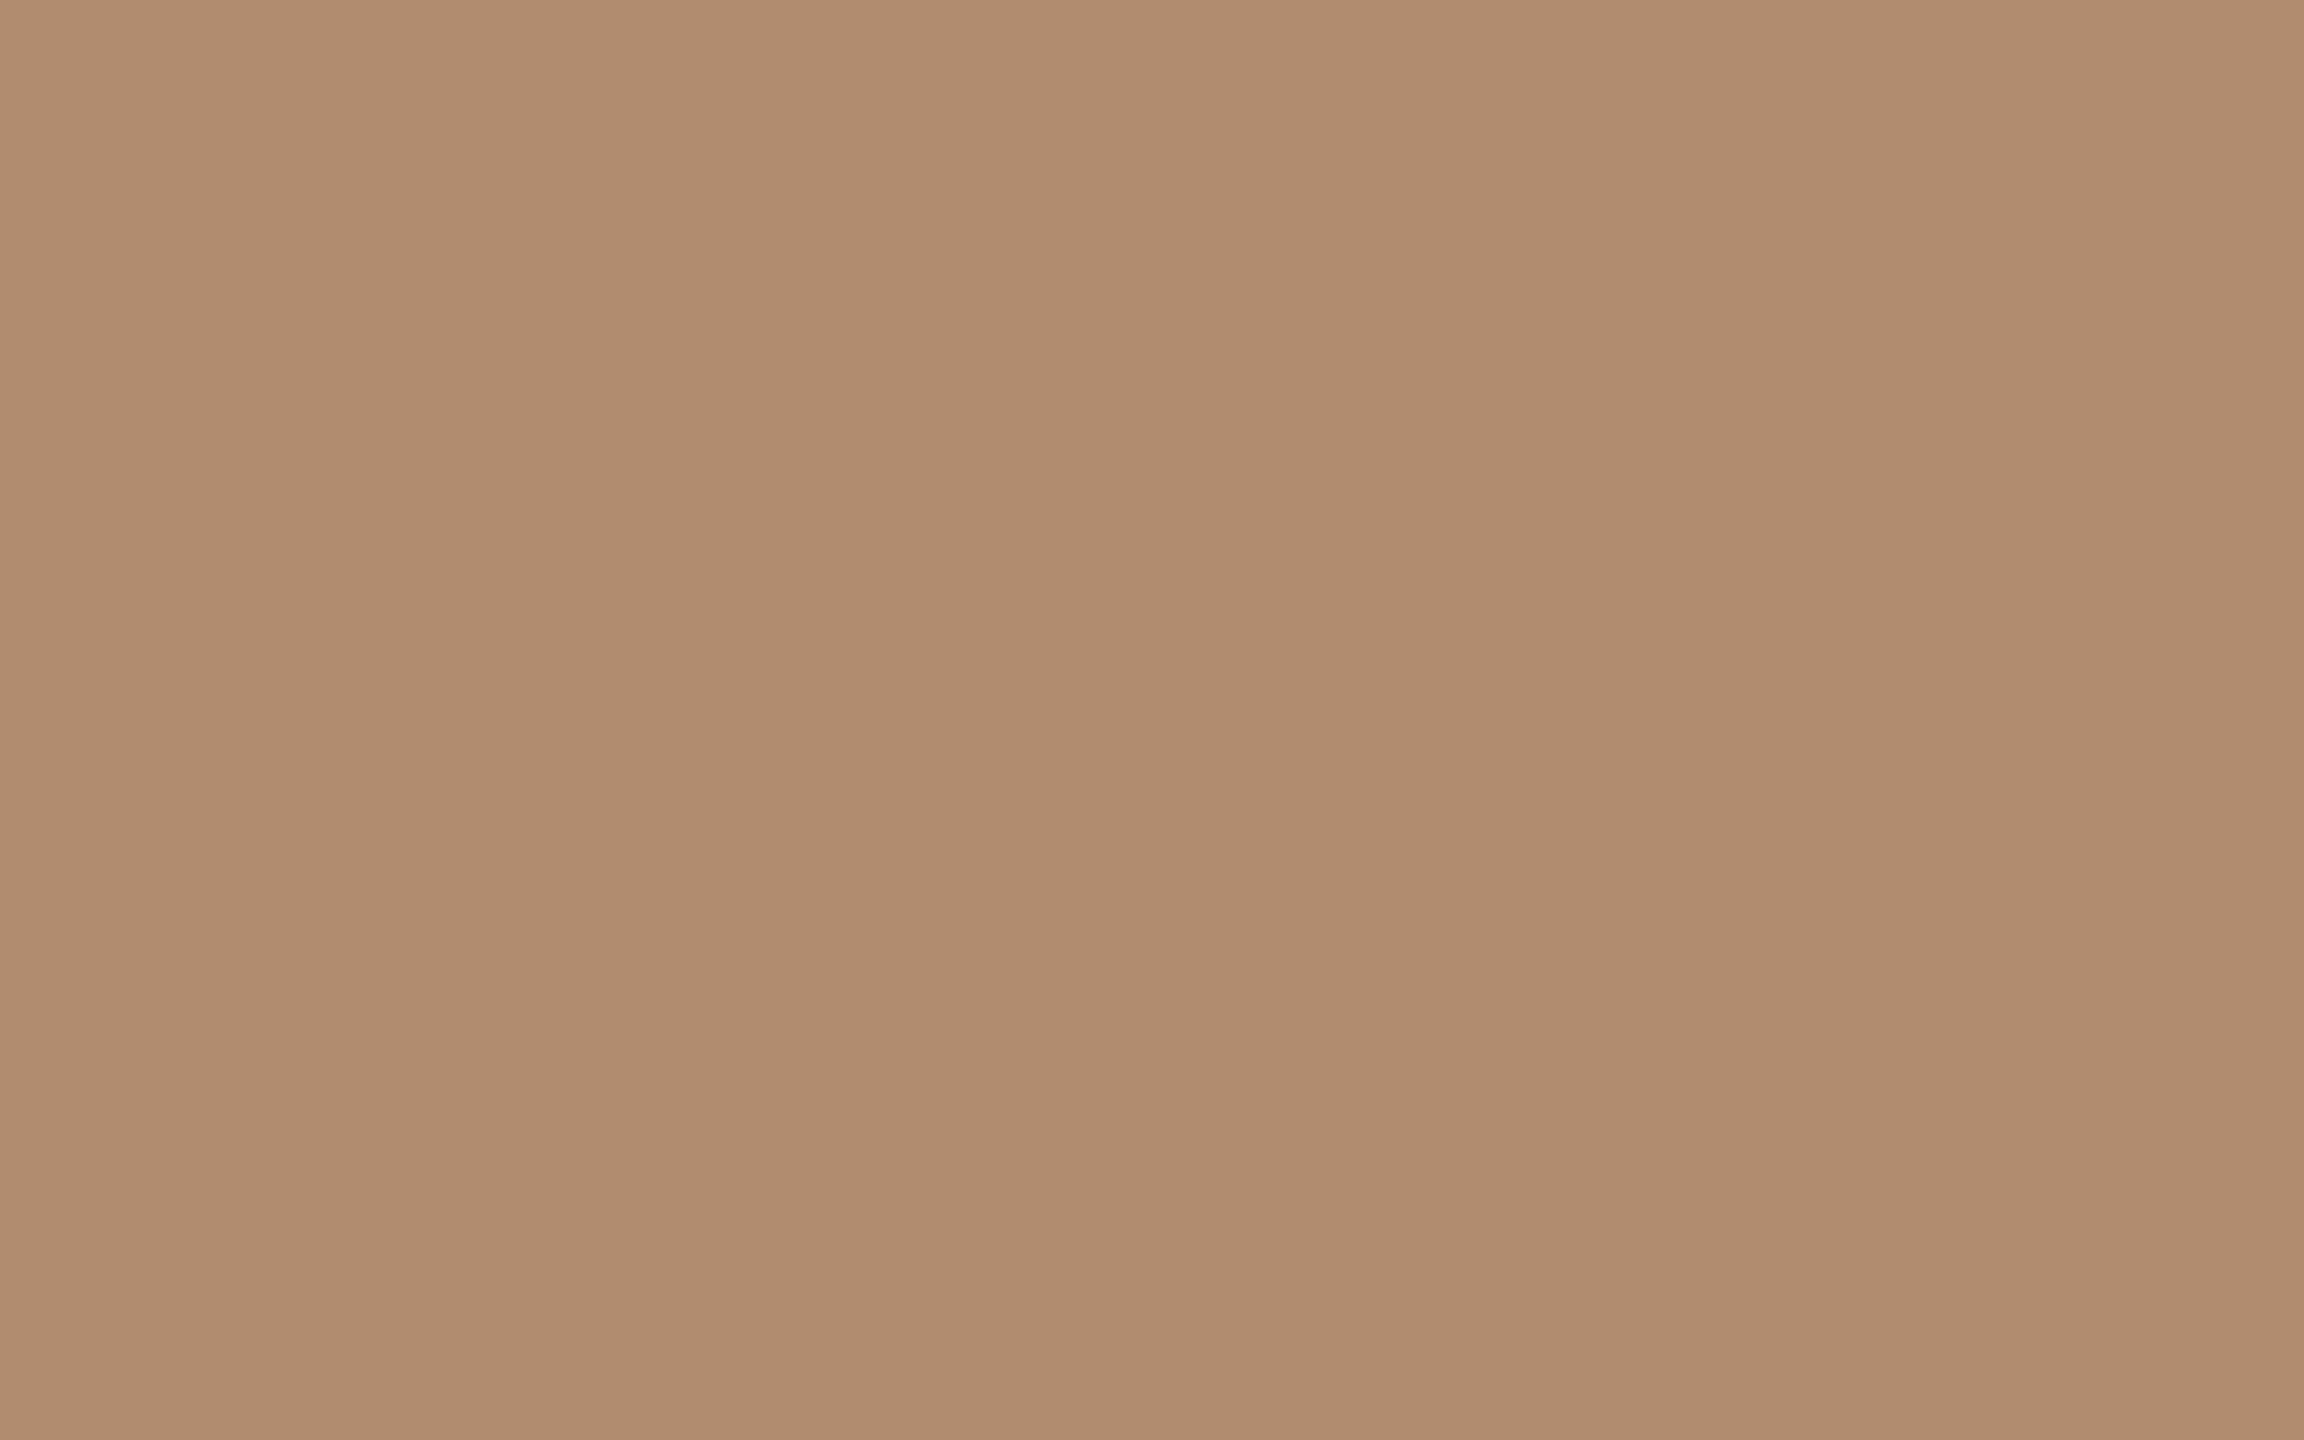 2304x1440 Light Taupe Solid Color Background